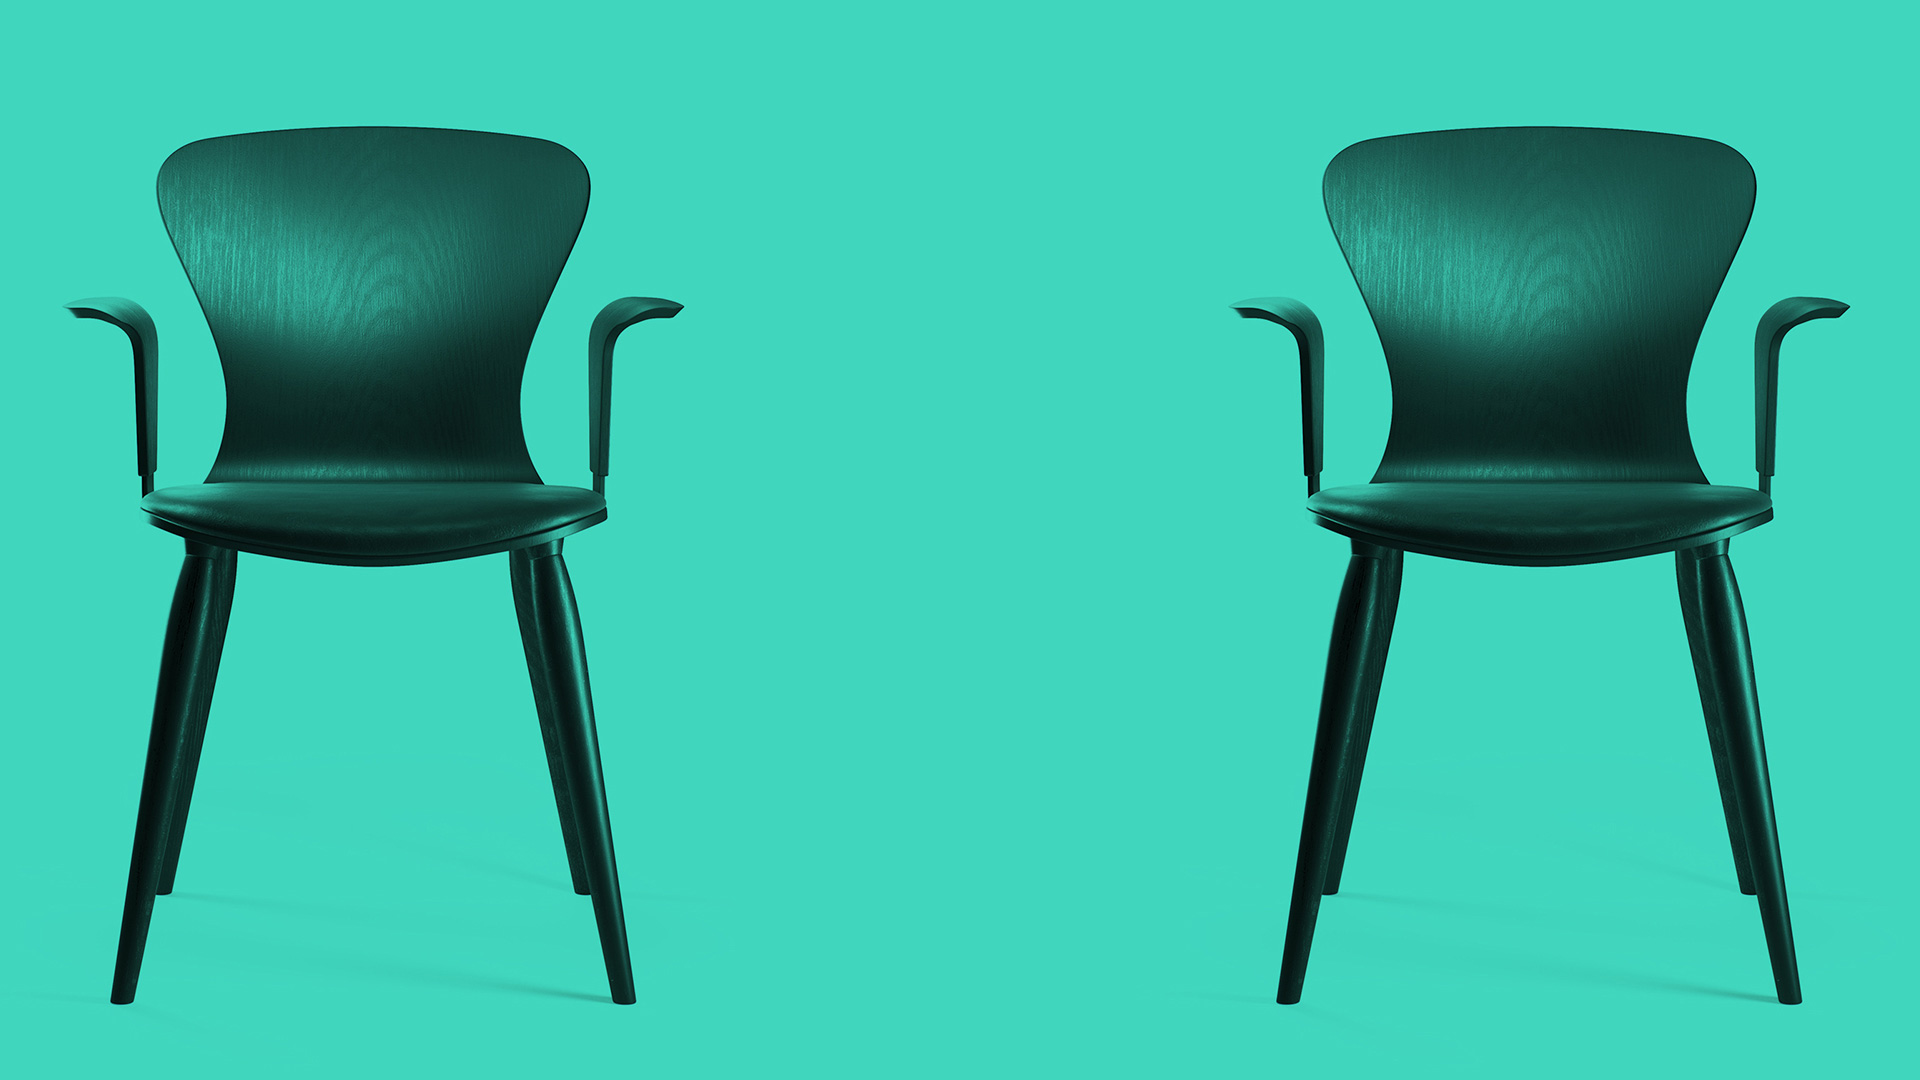 Graphic image of 2 black chairs